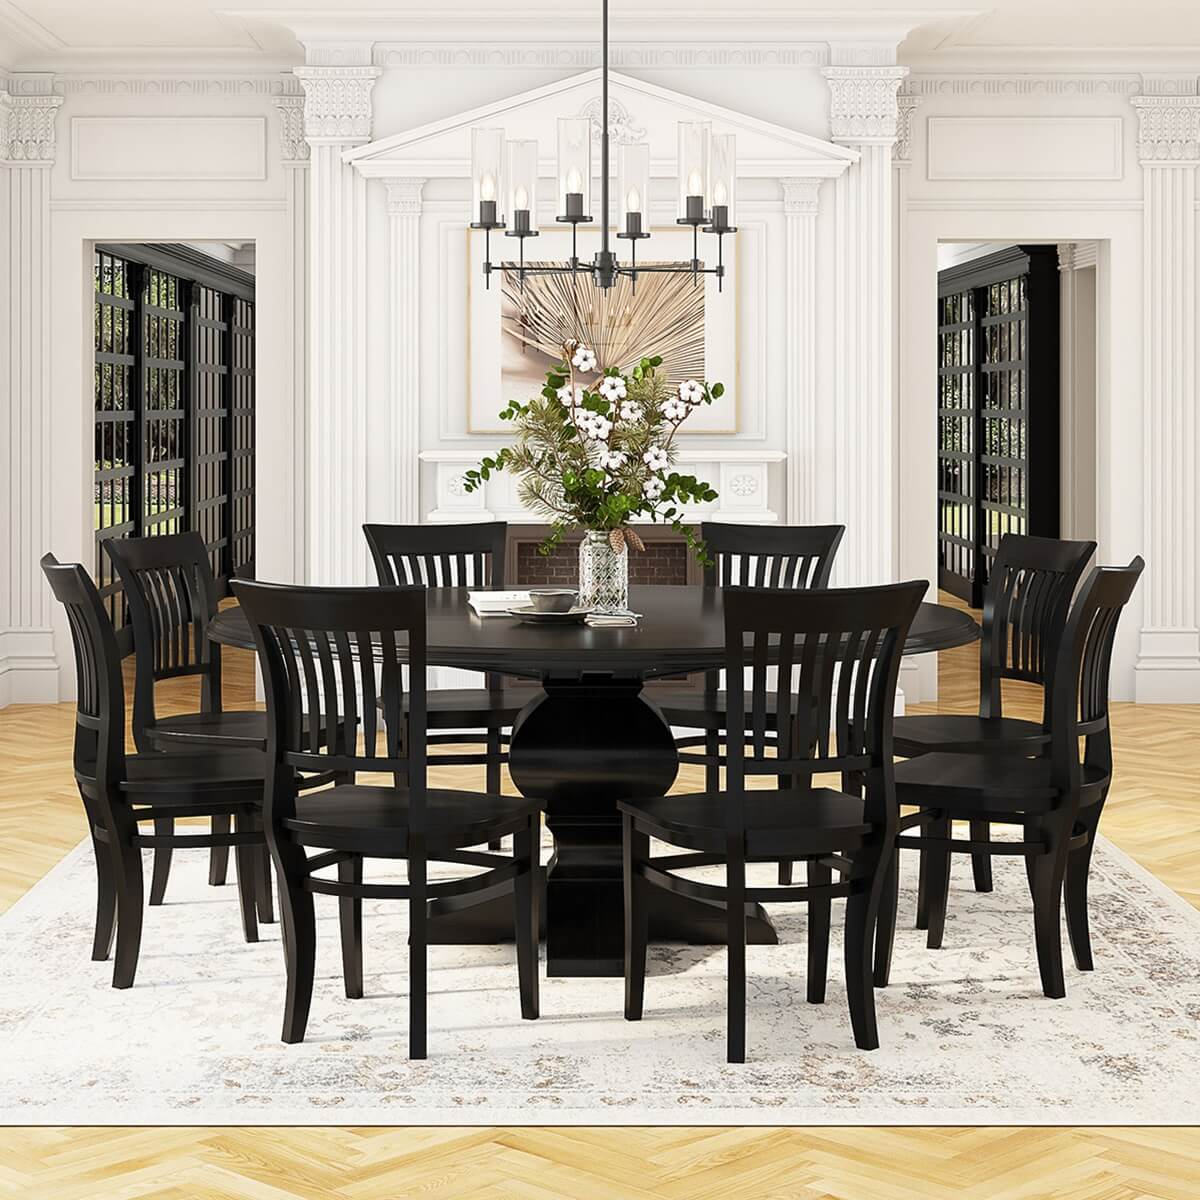 sierra nevada large round rustic solid wood dining - Wooden Dining Table And Chairs